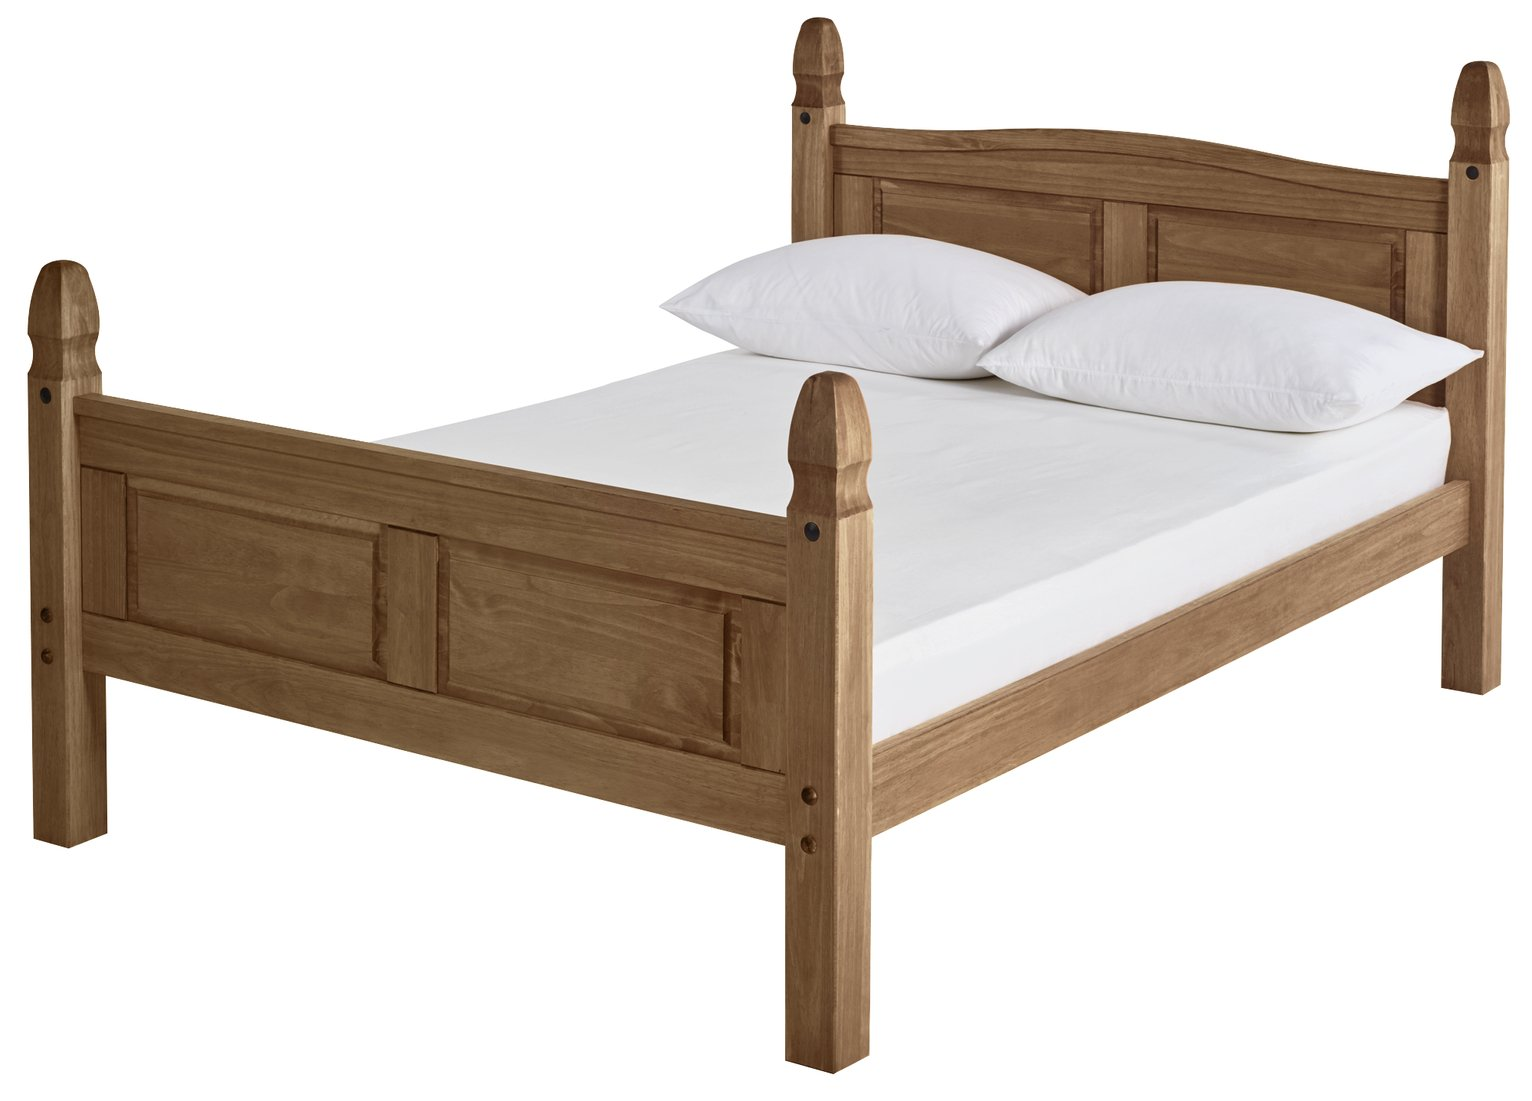 Argos Home Puerto Rico Kingsize Bed Frame review